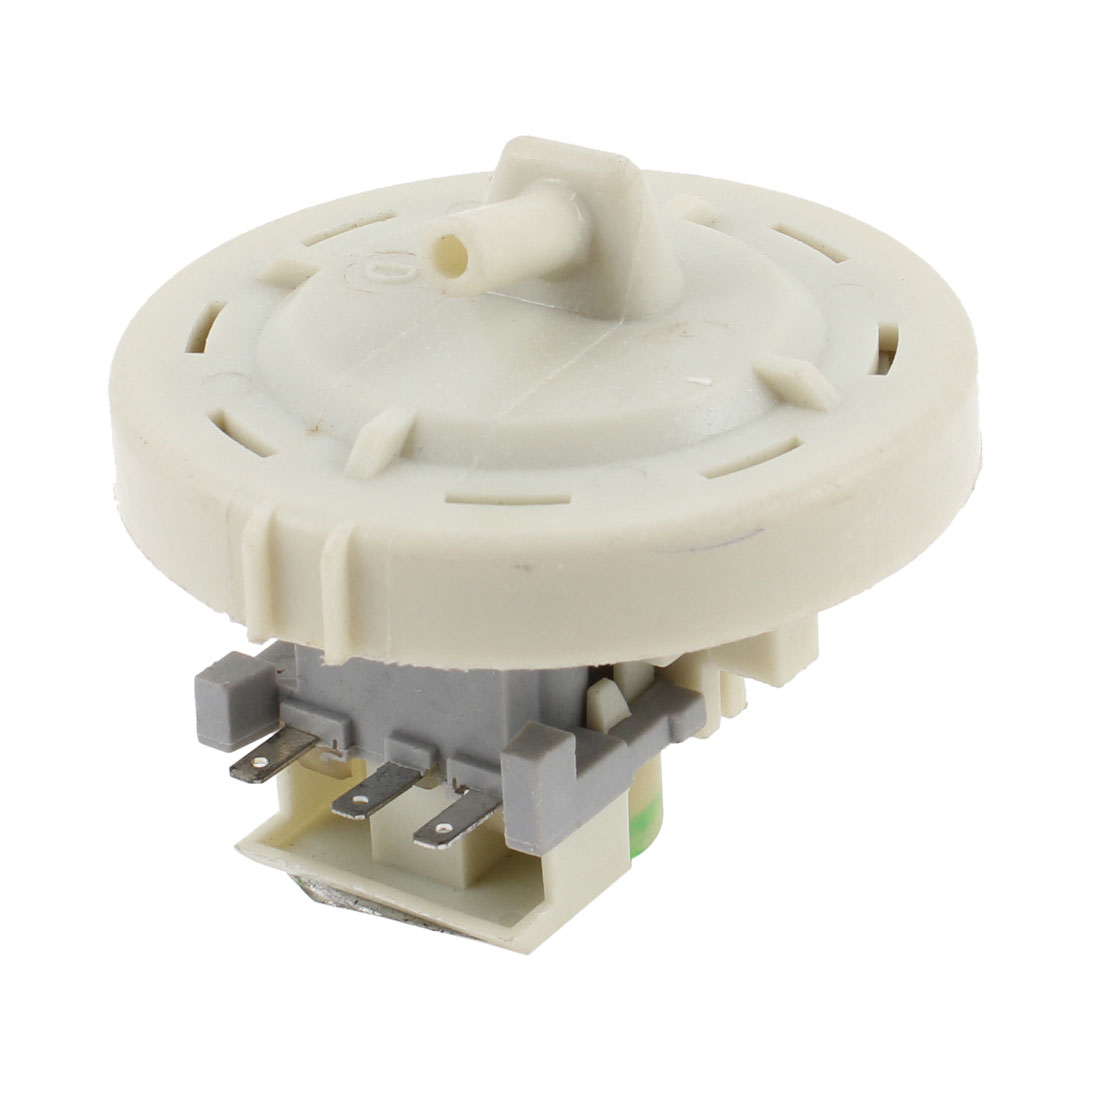 Gray Replaceable 58mm Diameter 3 Terminal Water Level Switch for Washing Machine